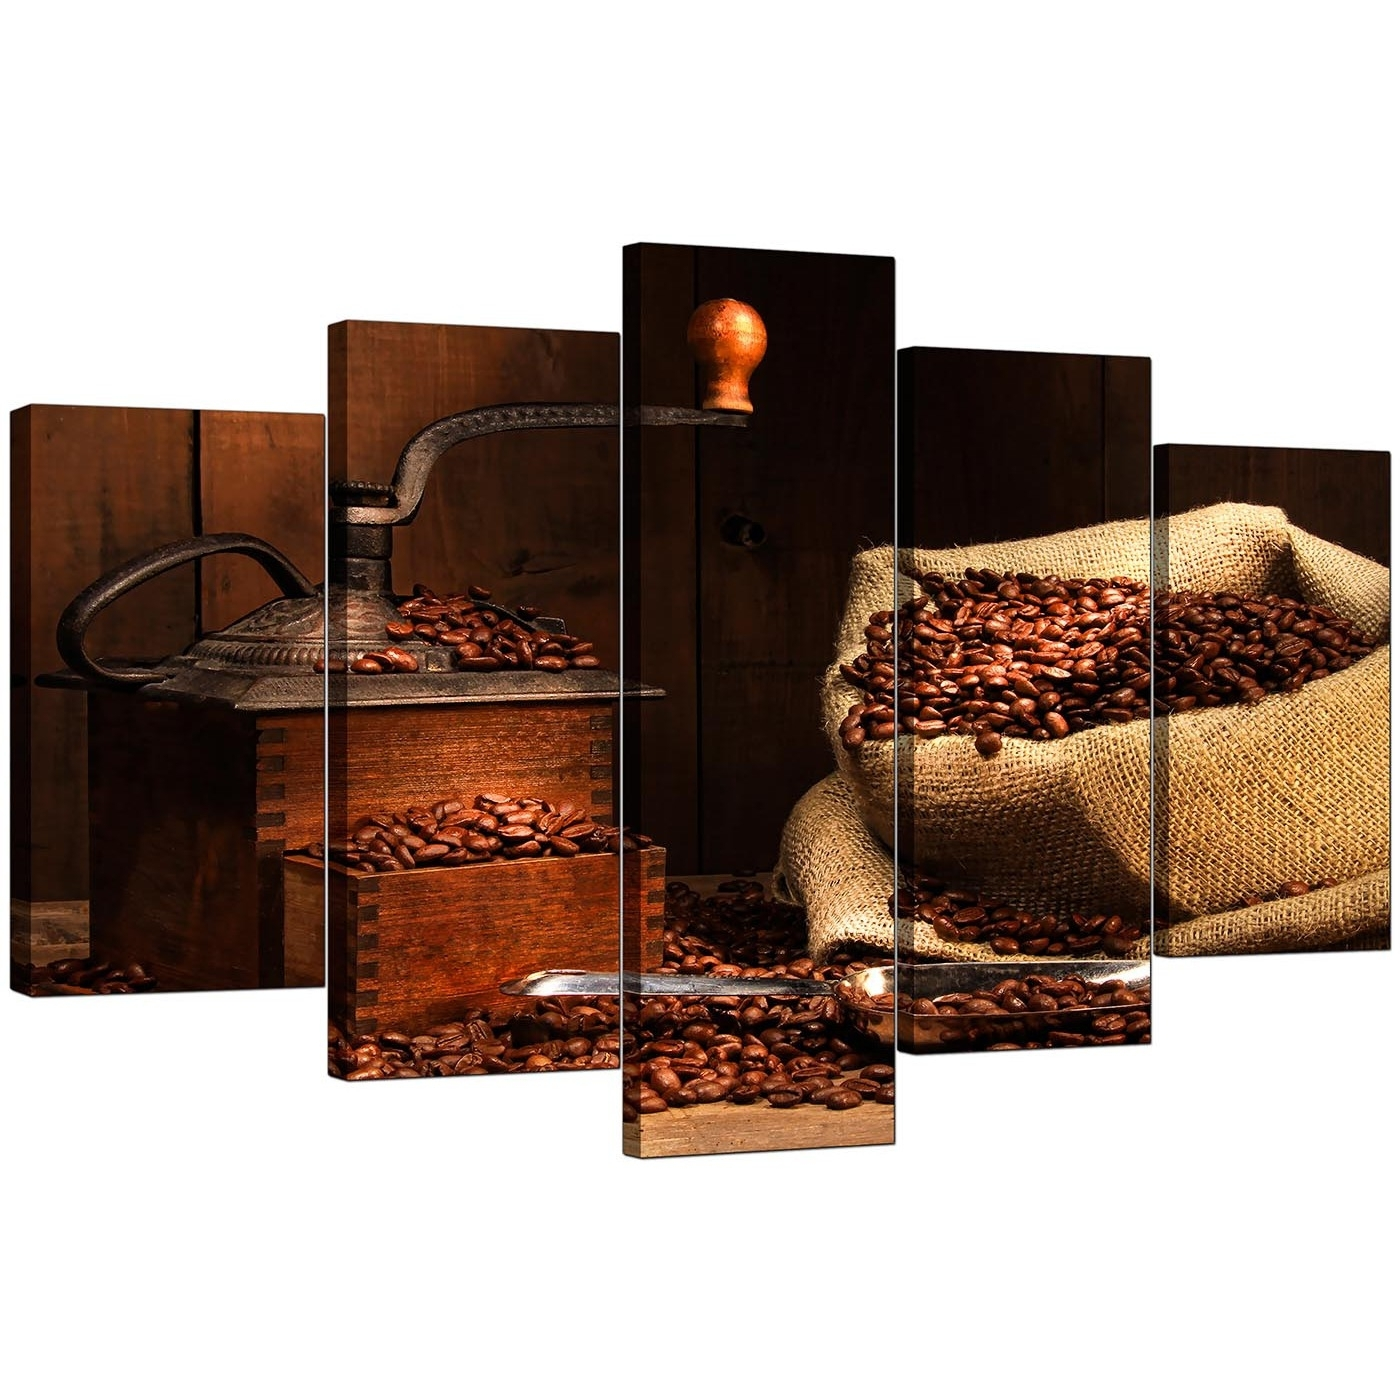 Extra Large Coffee Beans Canvas Wall Art 5 Piece In Brown In Recent Coffee Canvas Wall Art (View 4 of 15)